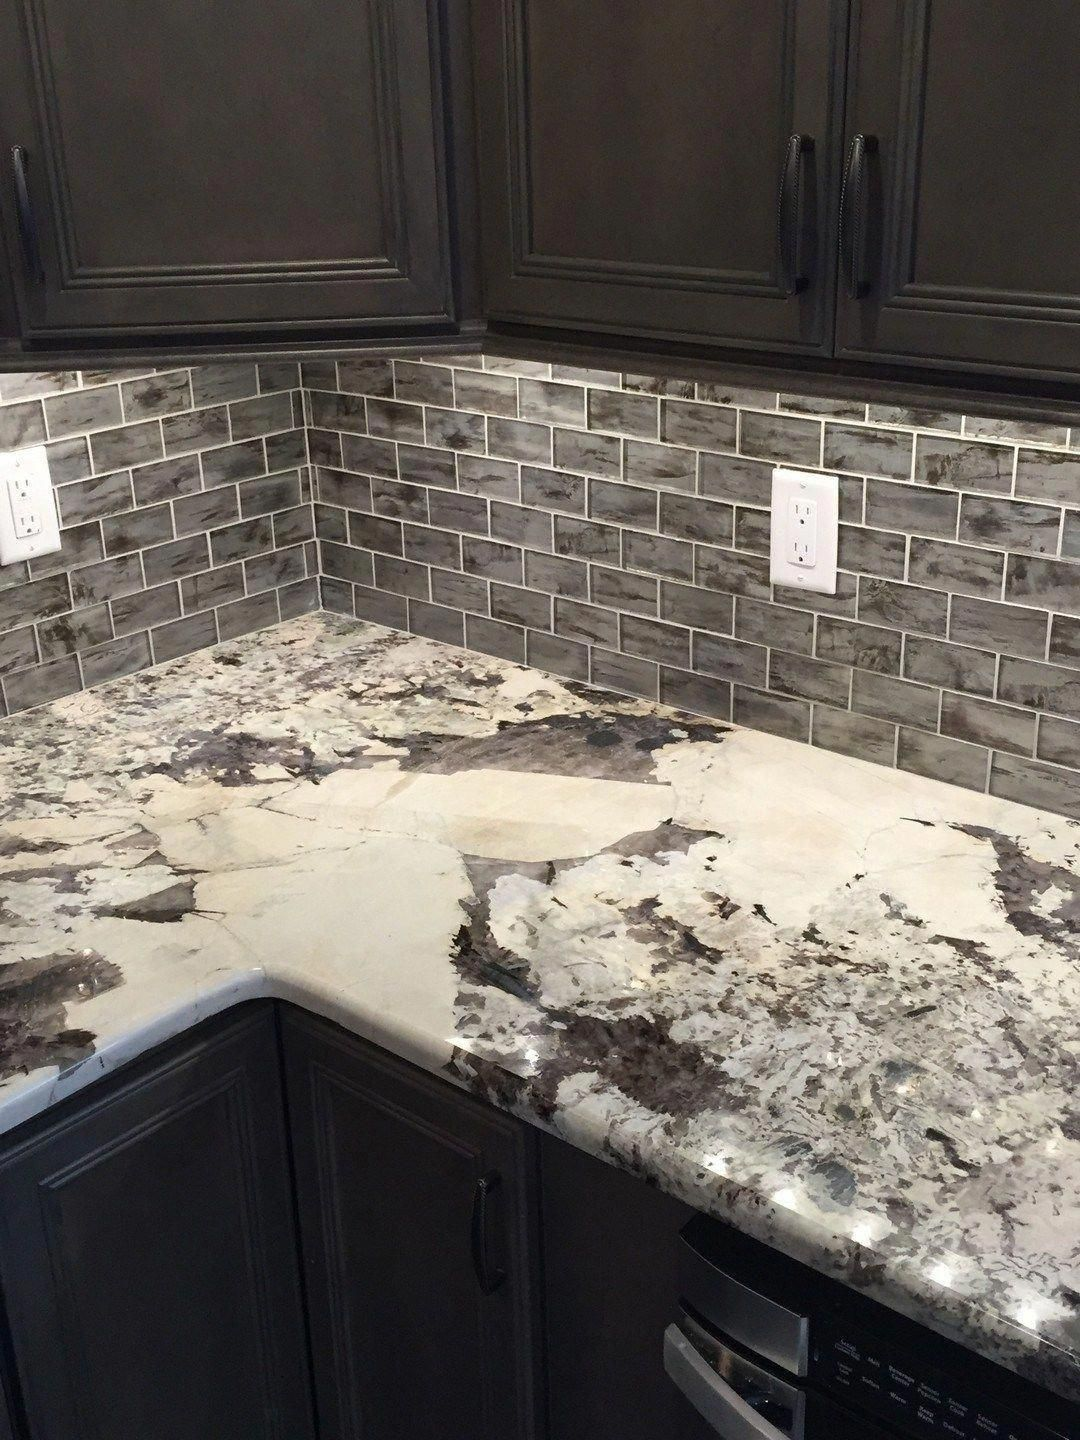 Acquire Fantastic Suggestions On Outdoor Kitchen Countertops Granite They Are Accessible For You On Ou Diy Kitchen Backsplash Kitchen Backsplash Countertops